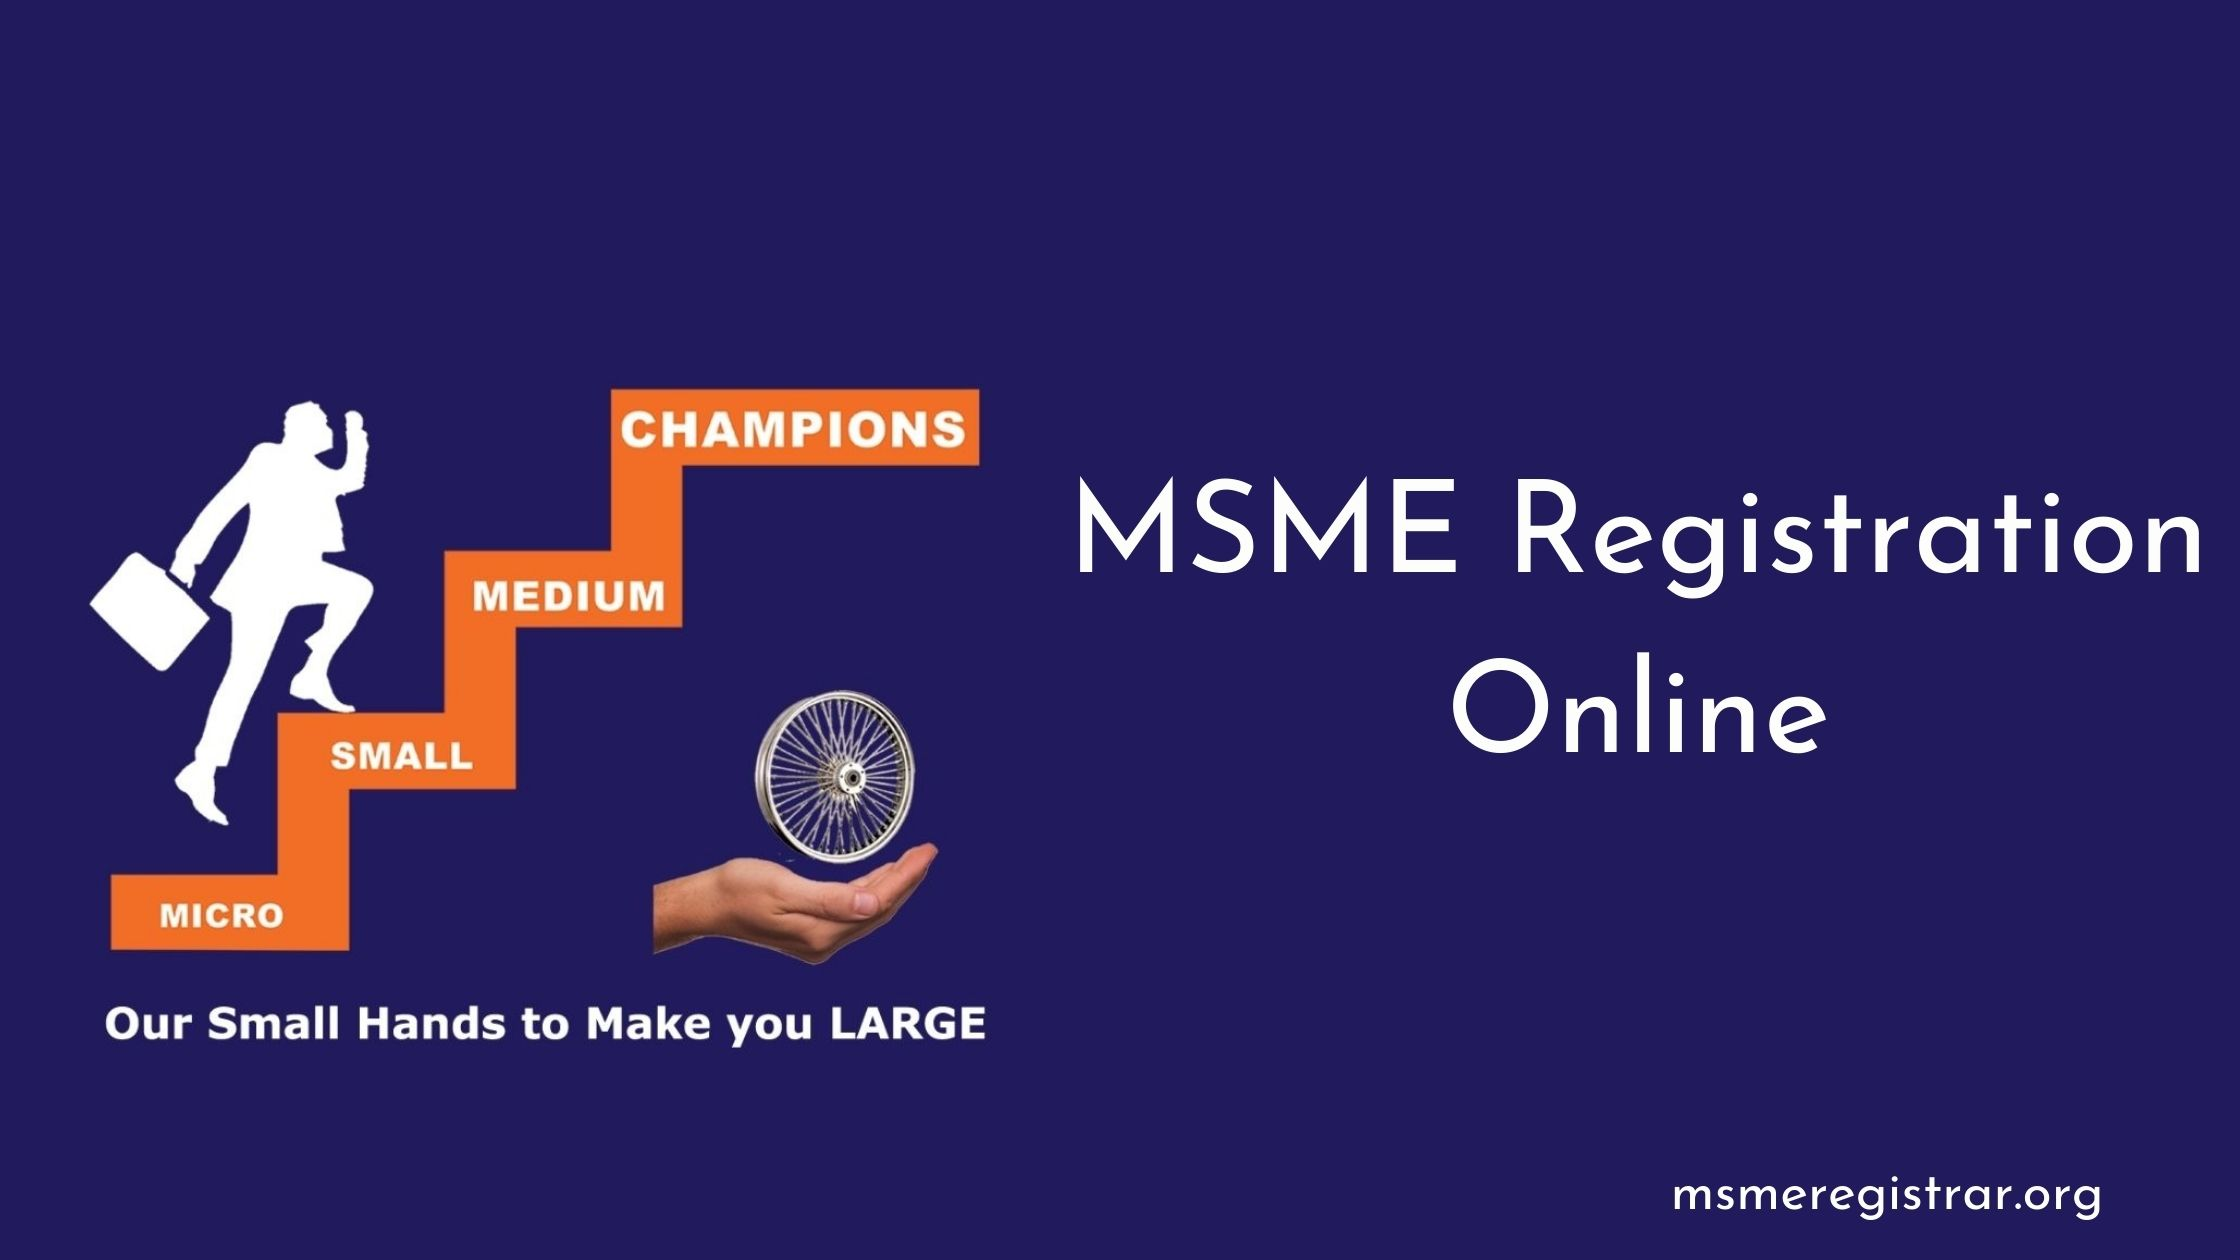 MSME Registration Online in India - Register MSME Business